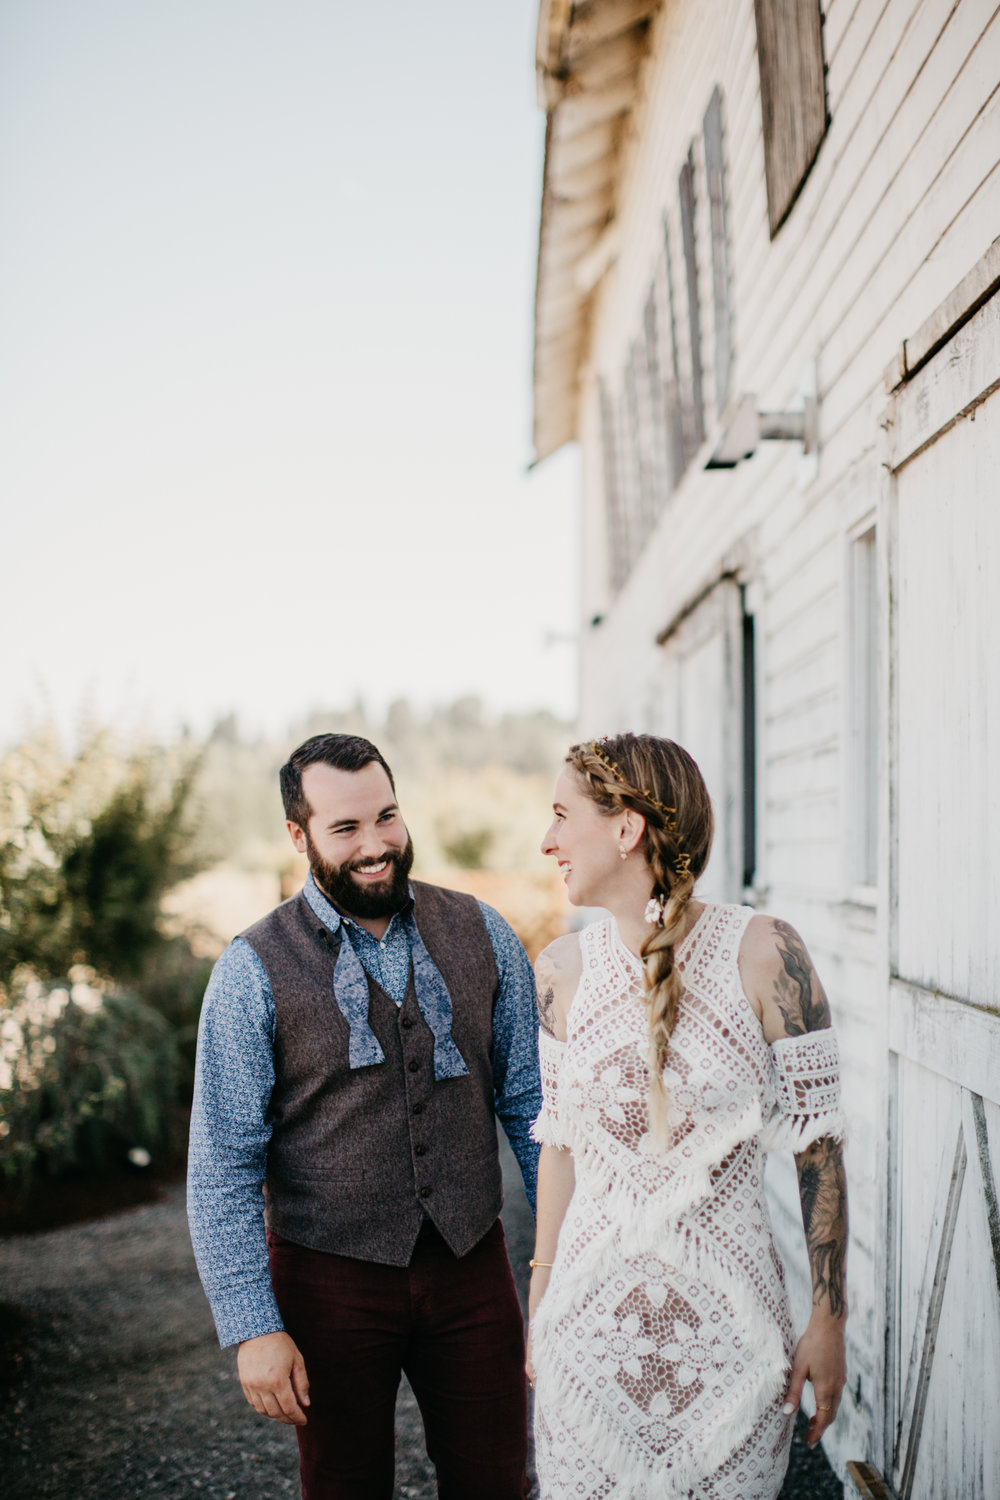 Max&SamPhoto_Seattle Wedding Photographer_Dairyland_042.jpg